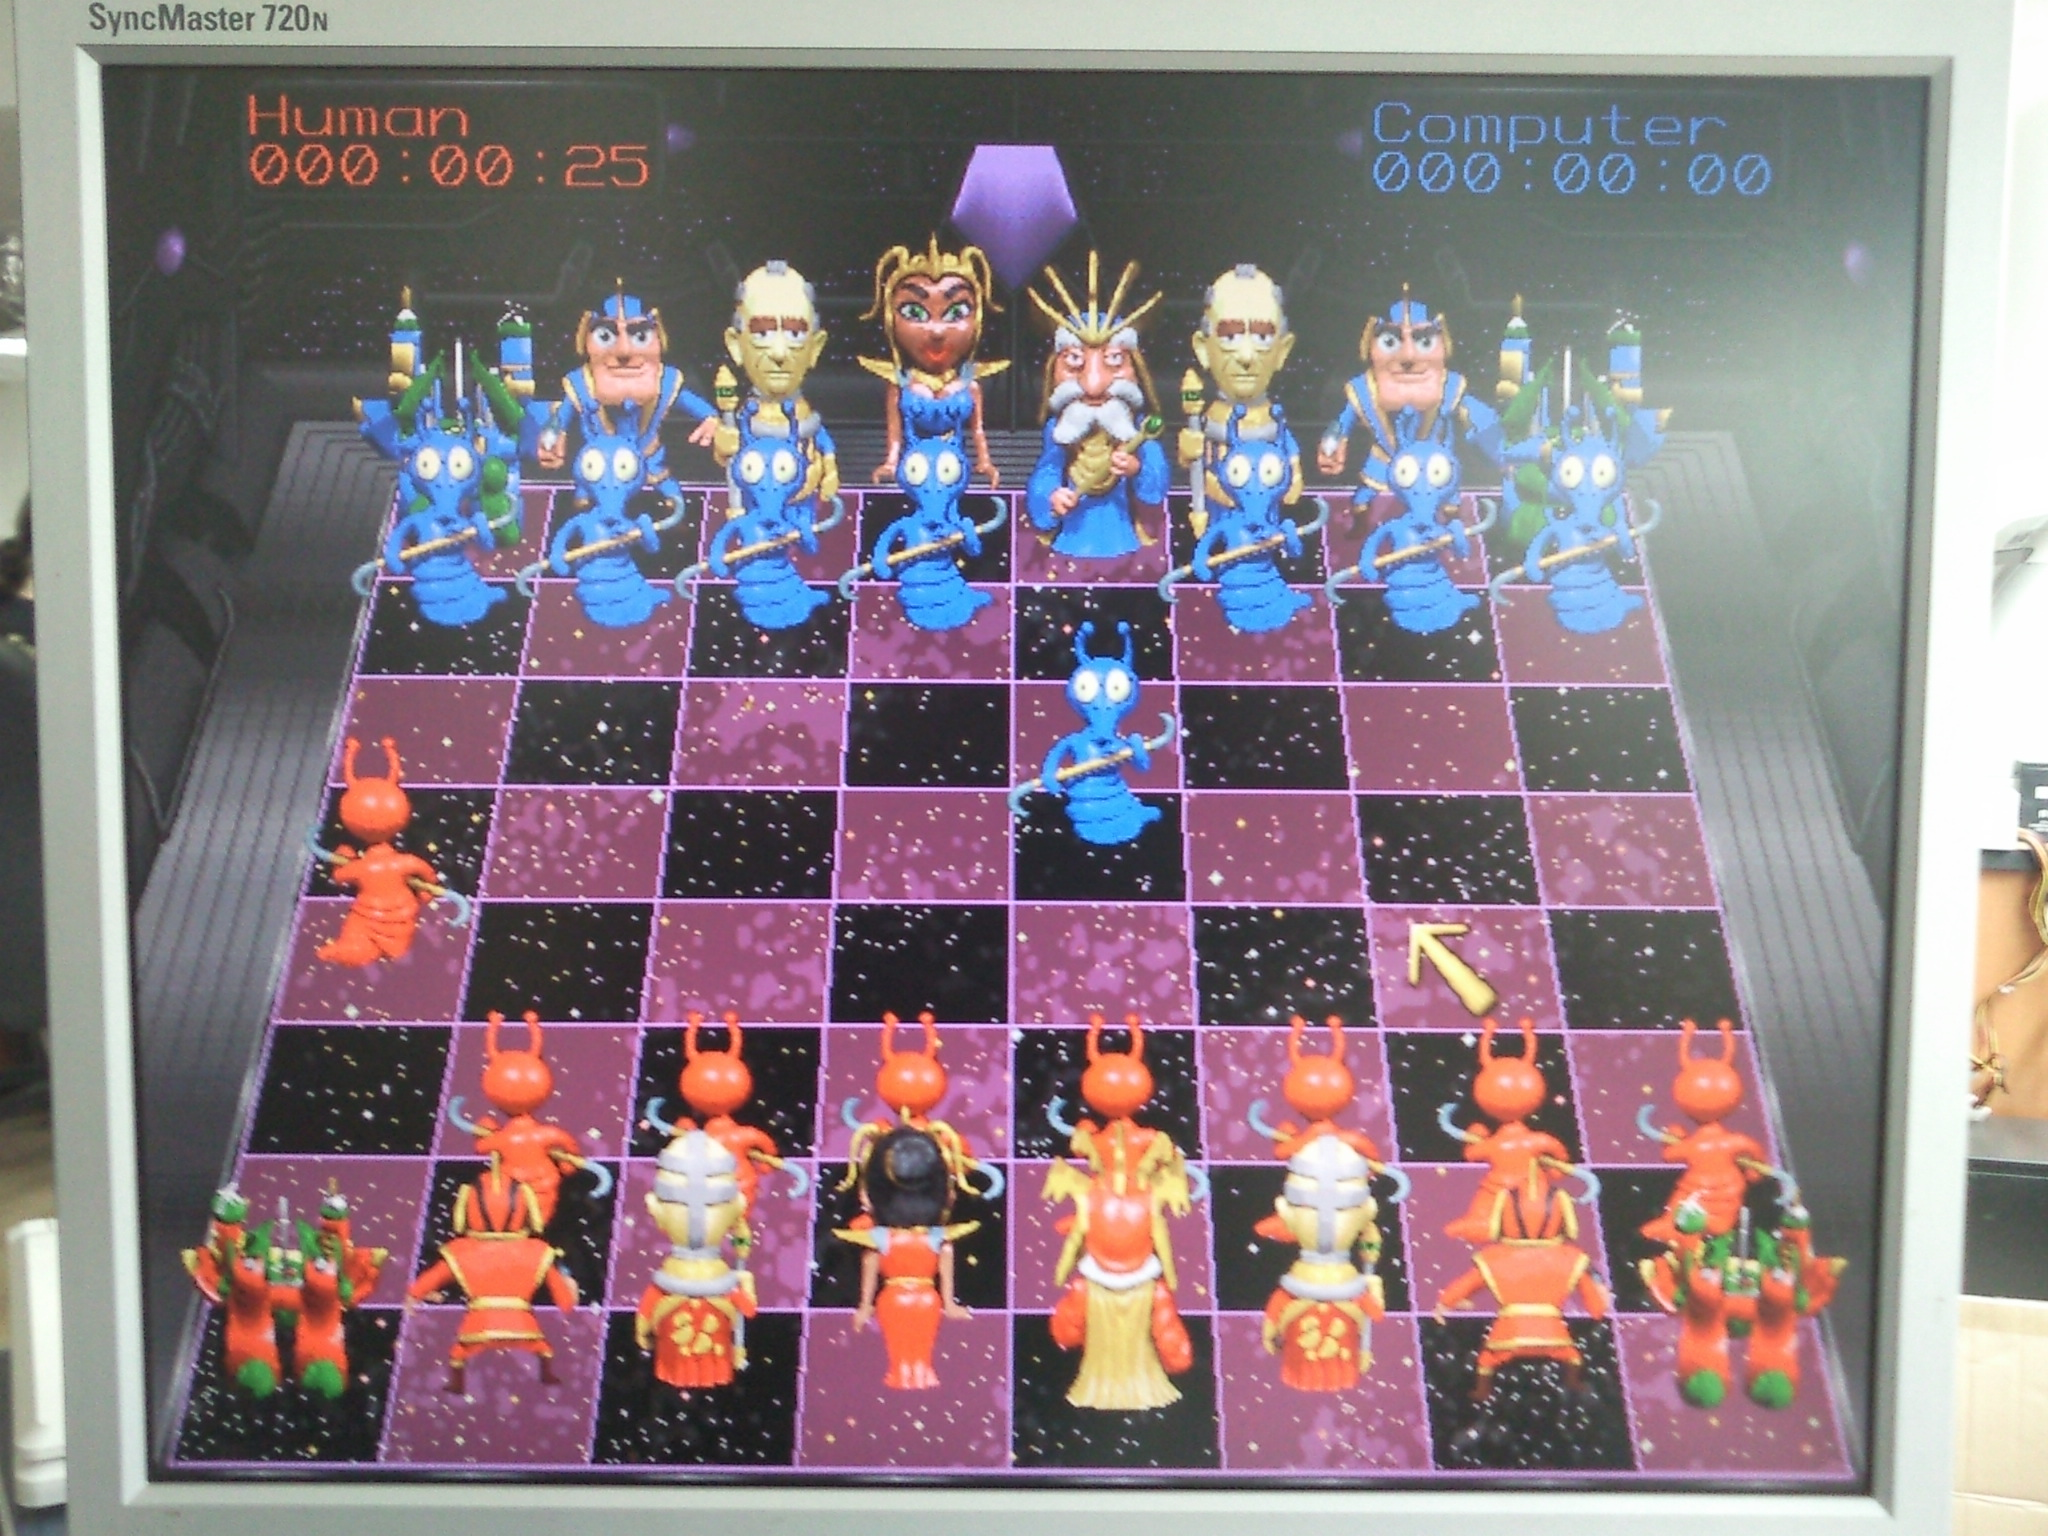 BattleChess4000 in 640x480x256